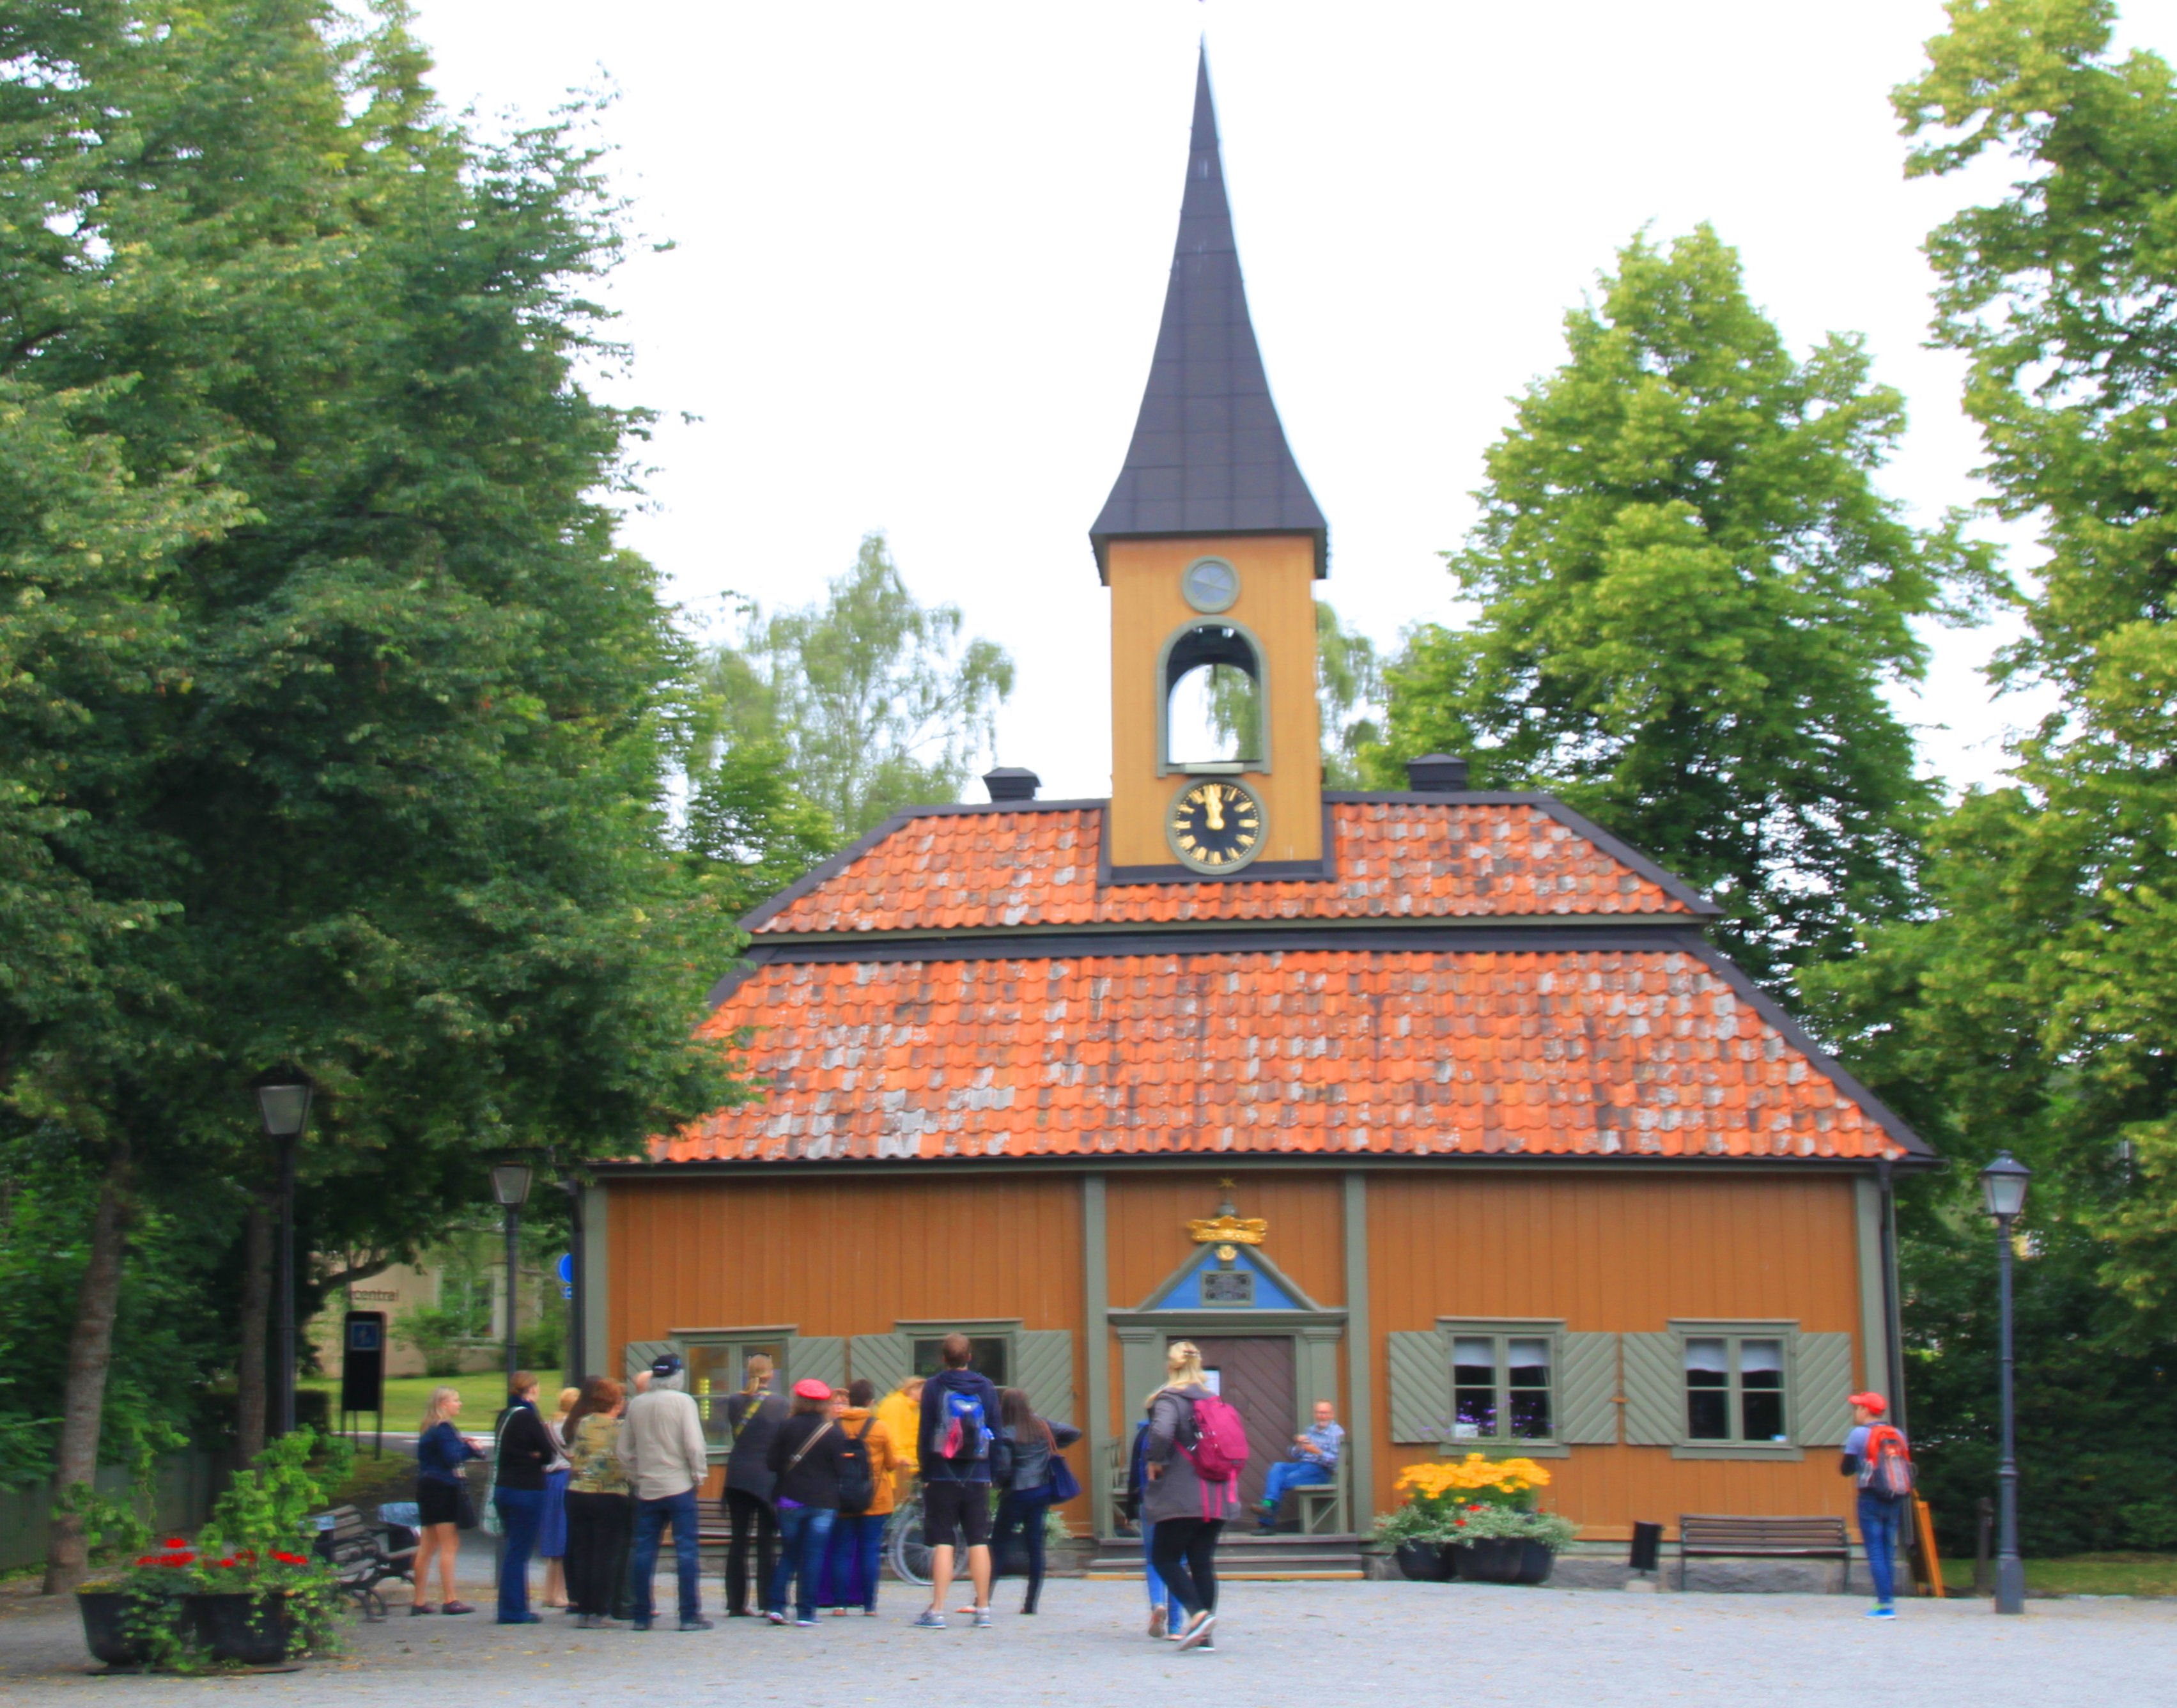 COSA VEDERE A SIGTUNA radhuset outside